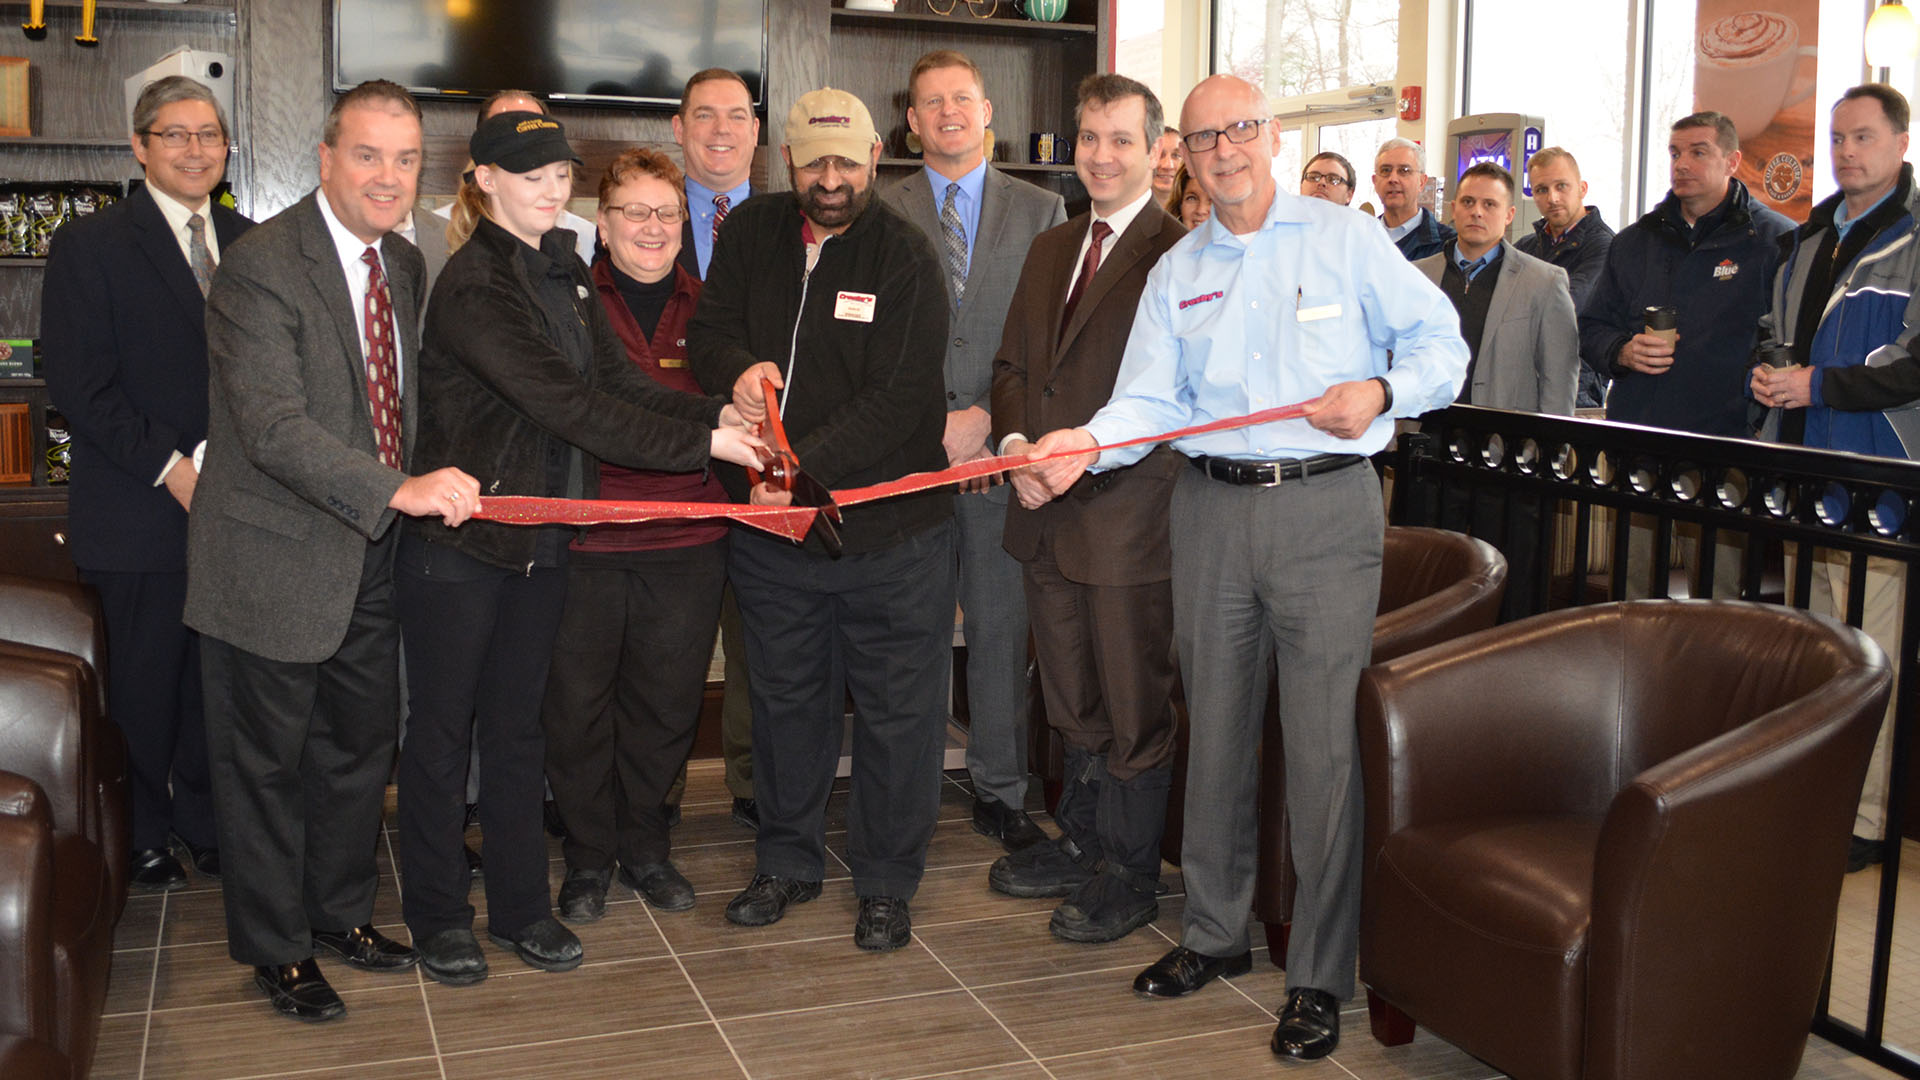 Our New Maple and Sweethome Grand Opening